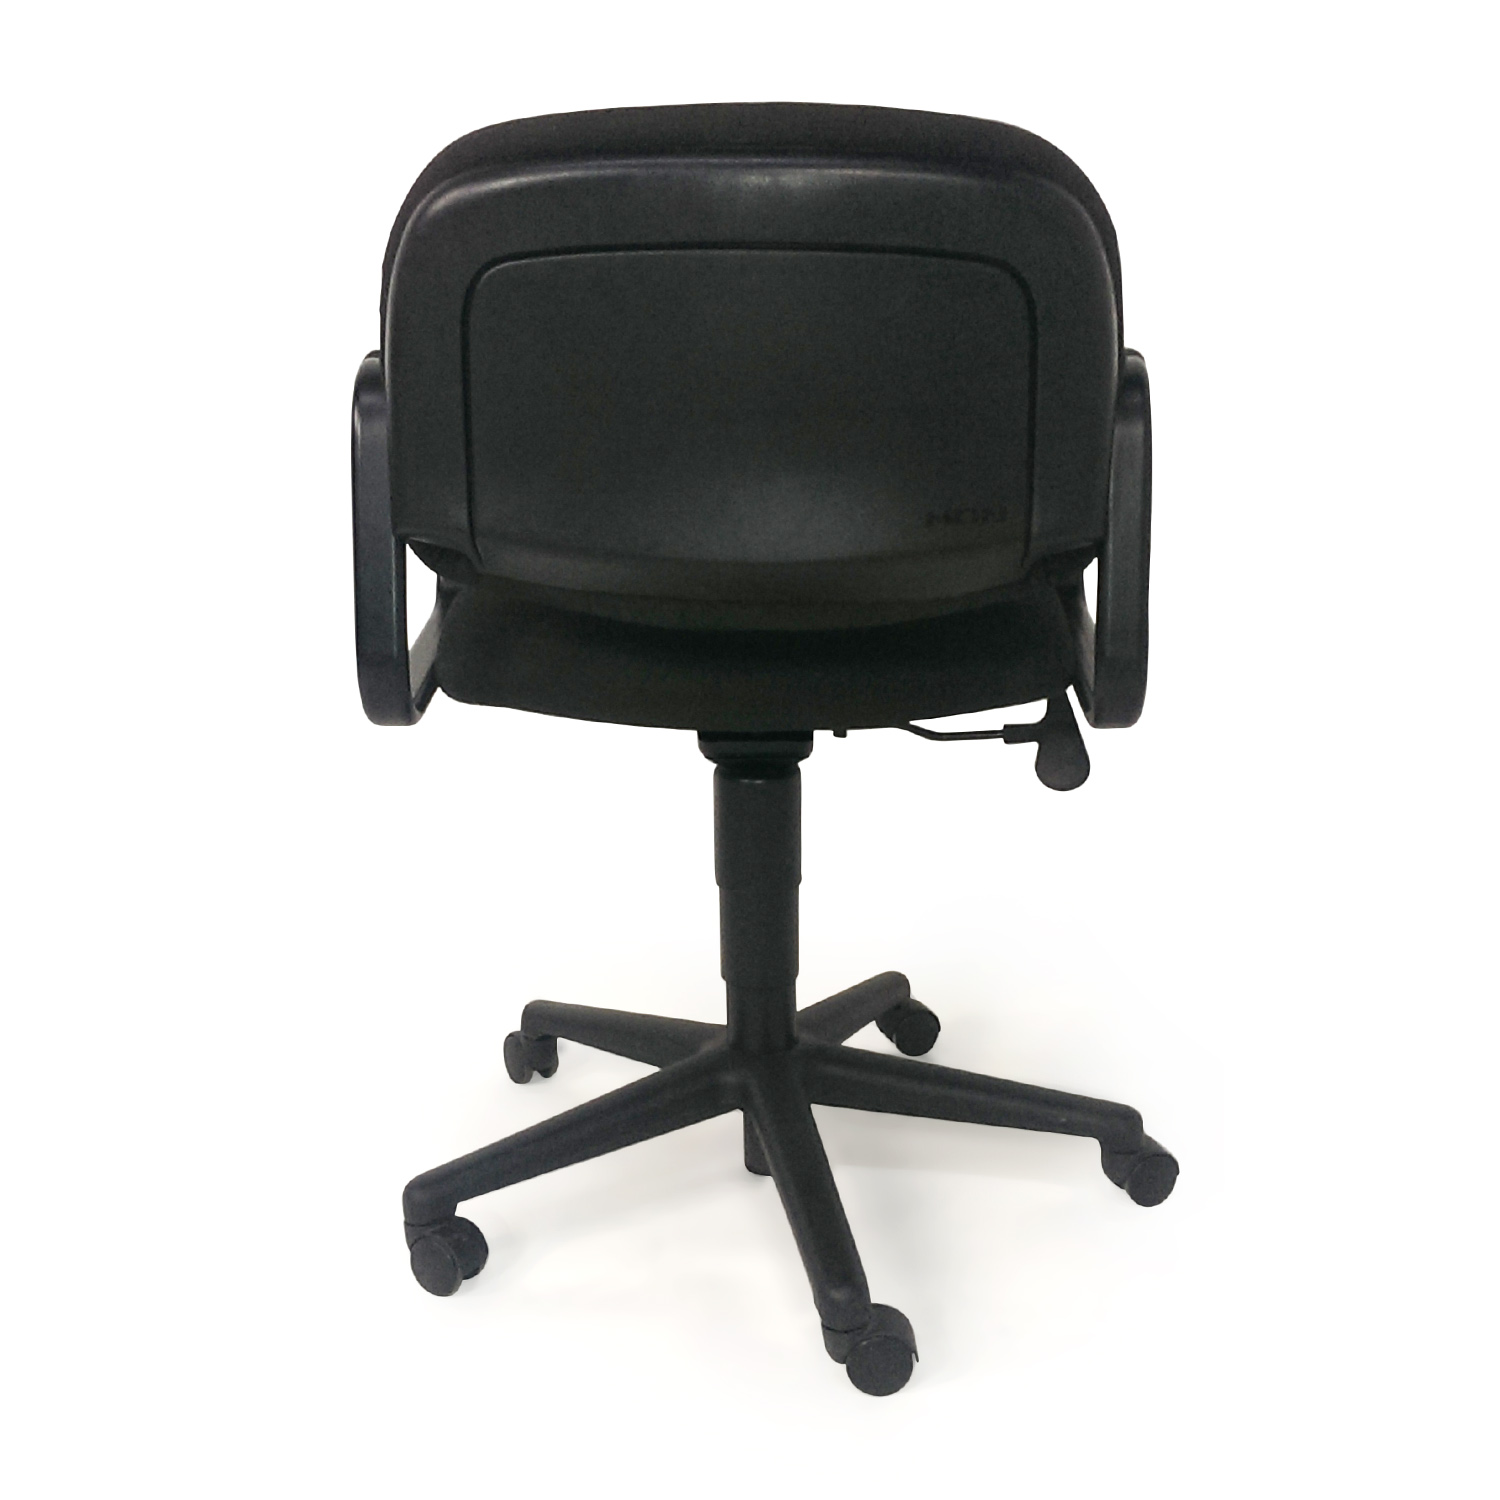 90 off swivel computer chair chairs for Furniture 90 off